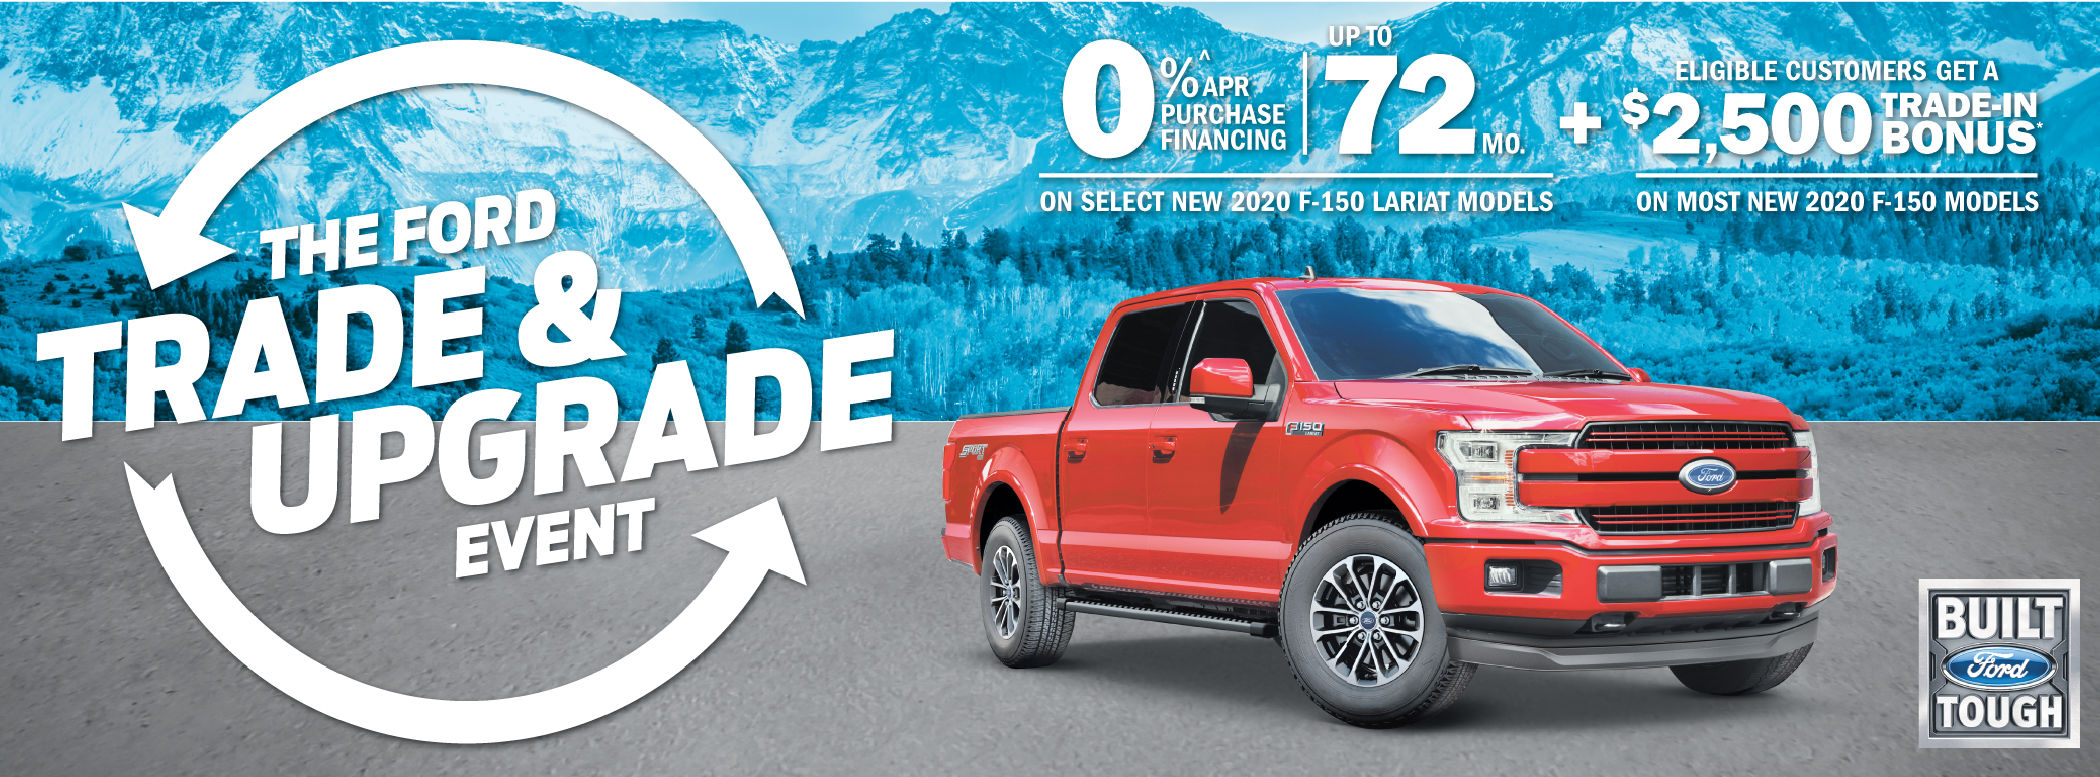 New 2020 ford F-150 Smiths falls Brockville